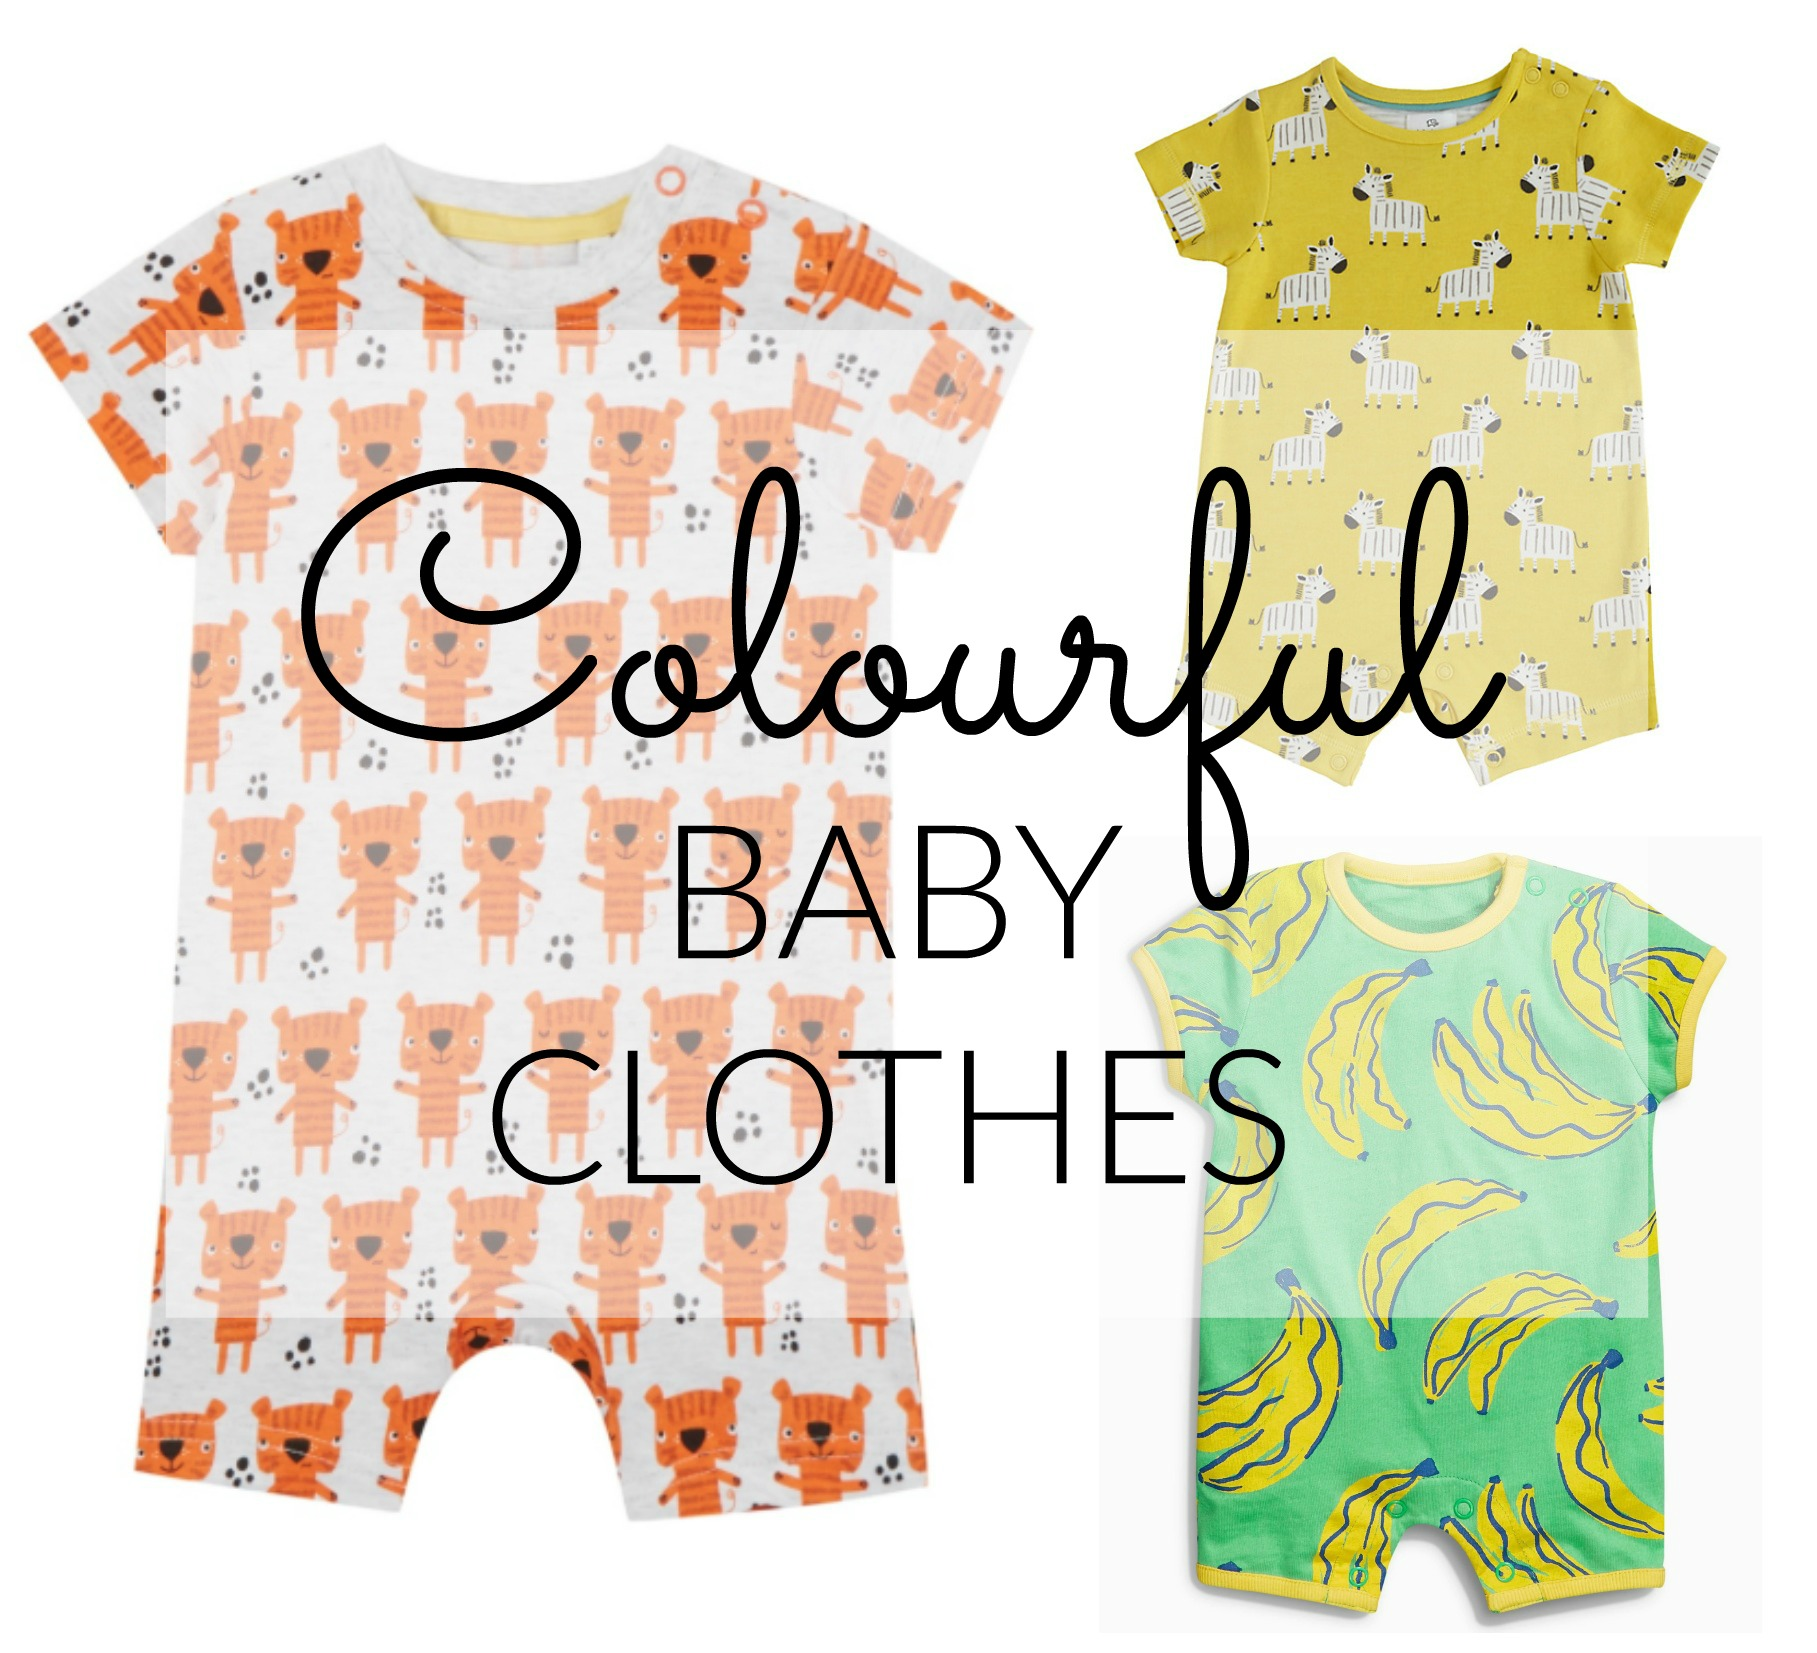 Bright Colourful Baby Clothes for Summer Lamb & Bear